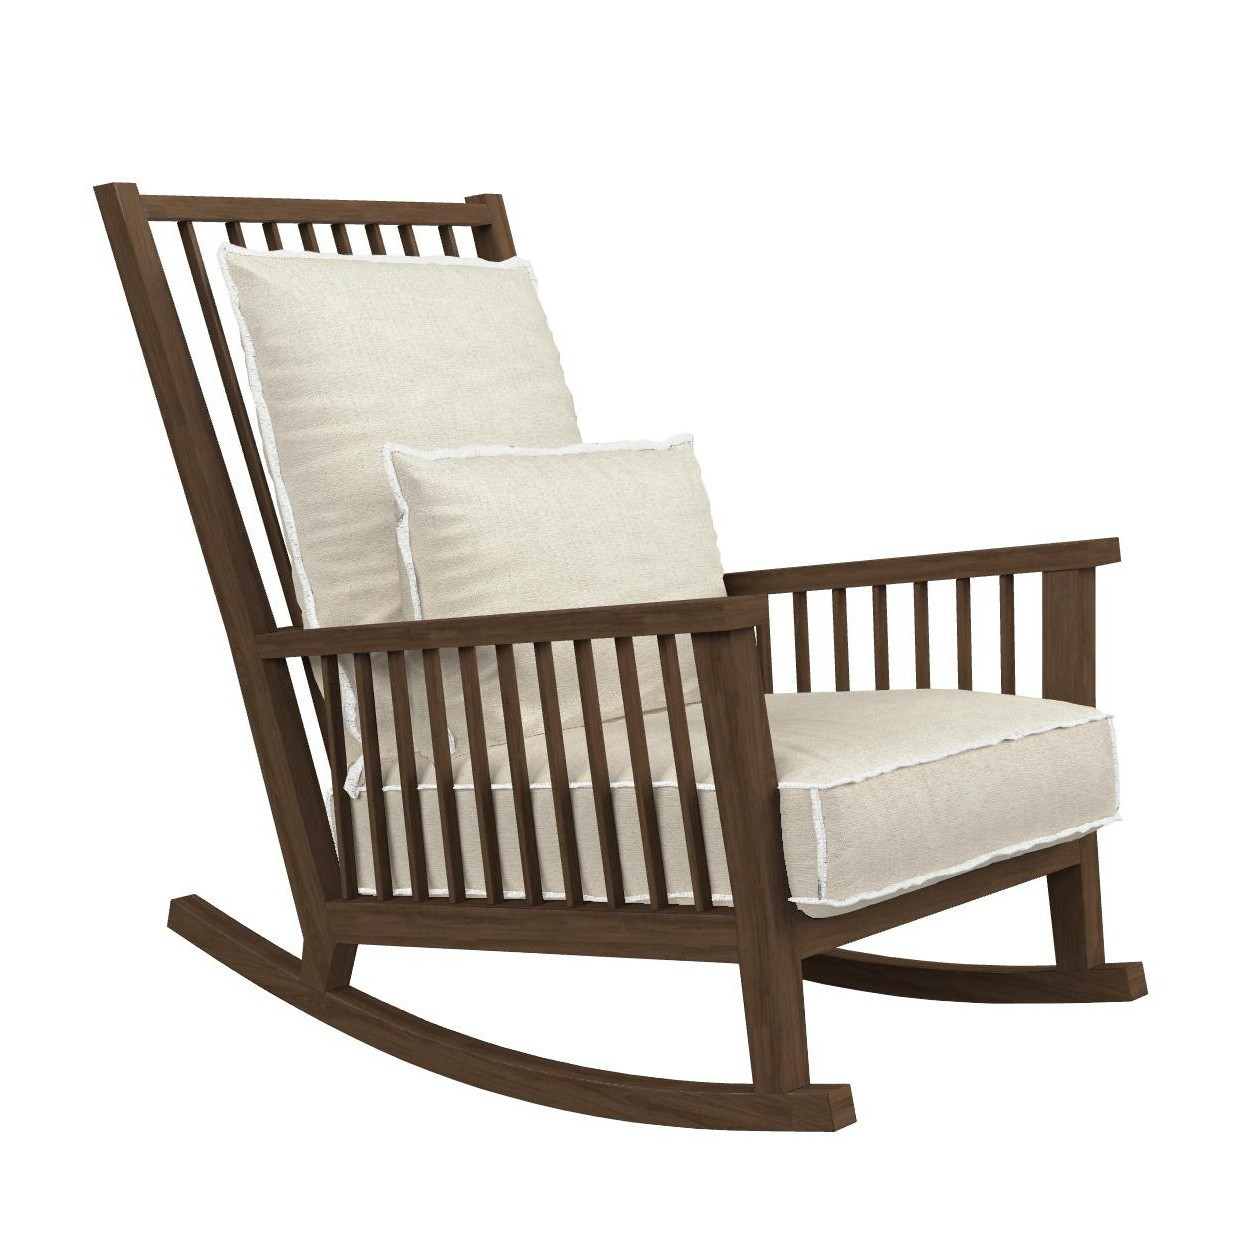 Outdoor Schaukelstuhl Gray 09 Rocking Chair